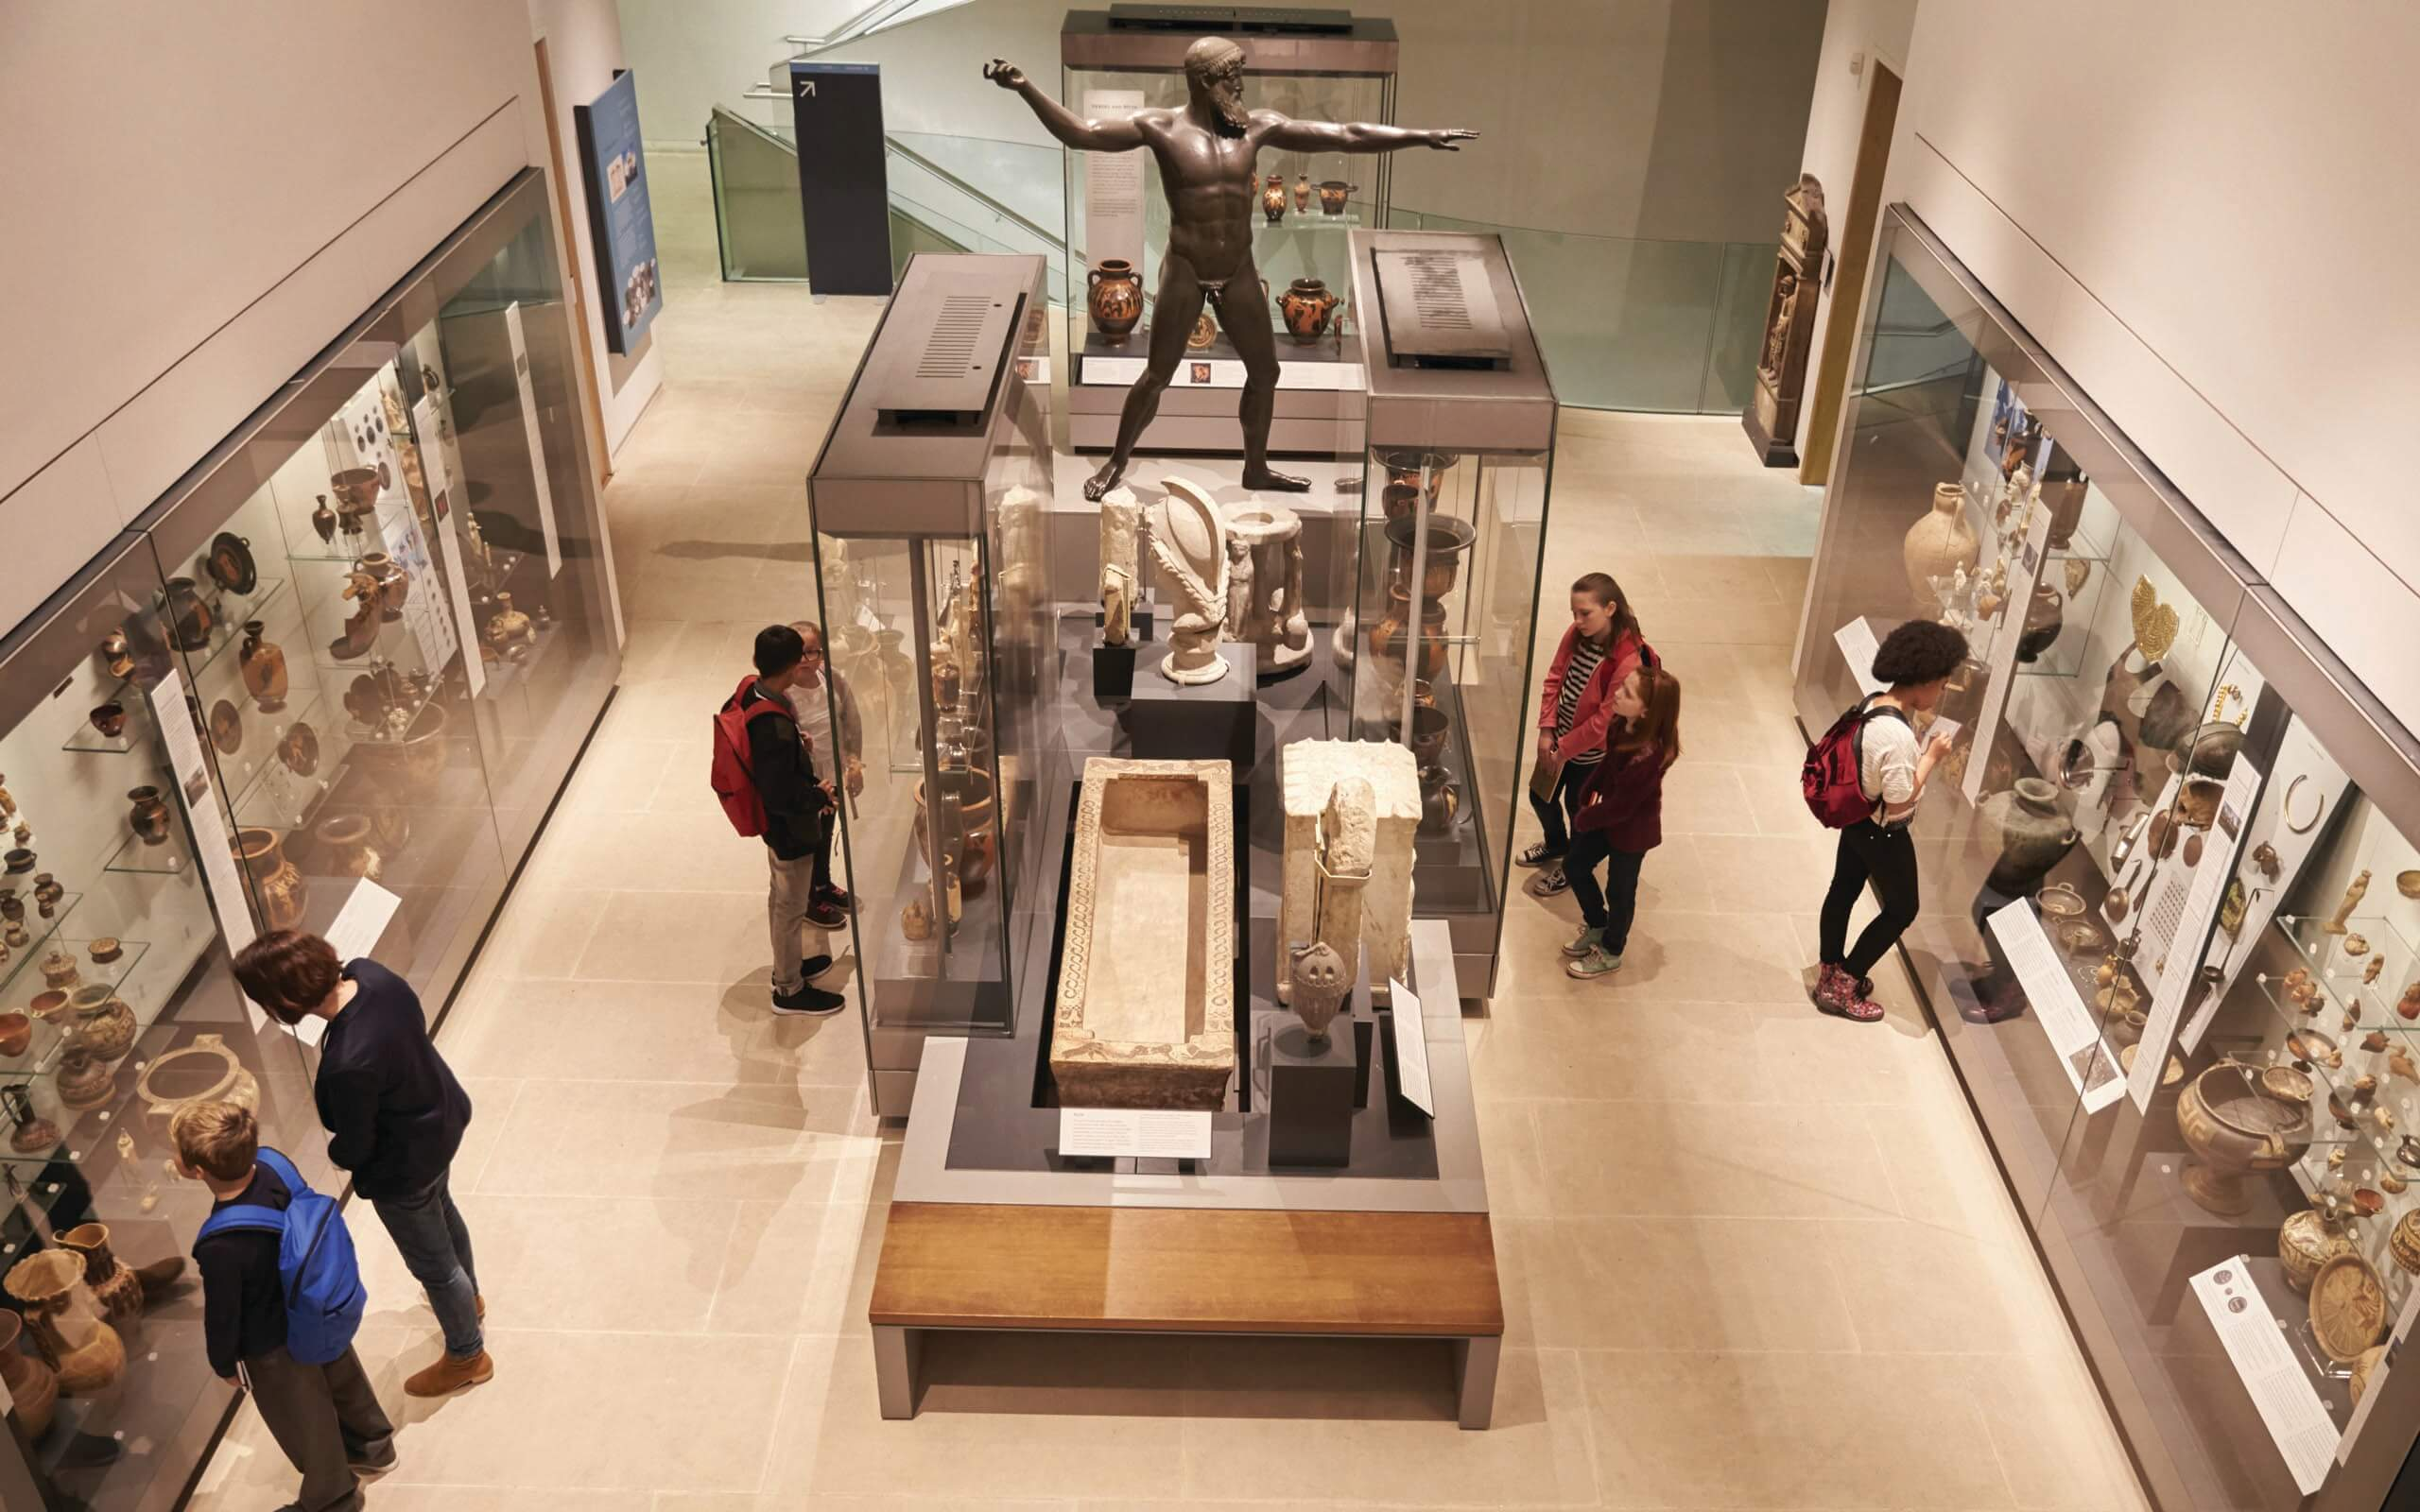 museum exhibition of sculpture and artifacts from ancient civilizations